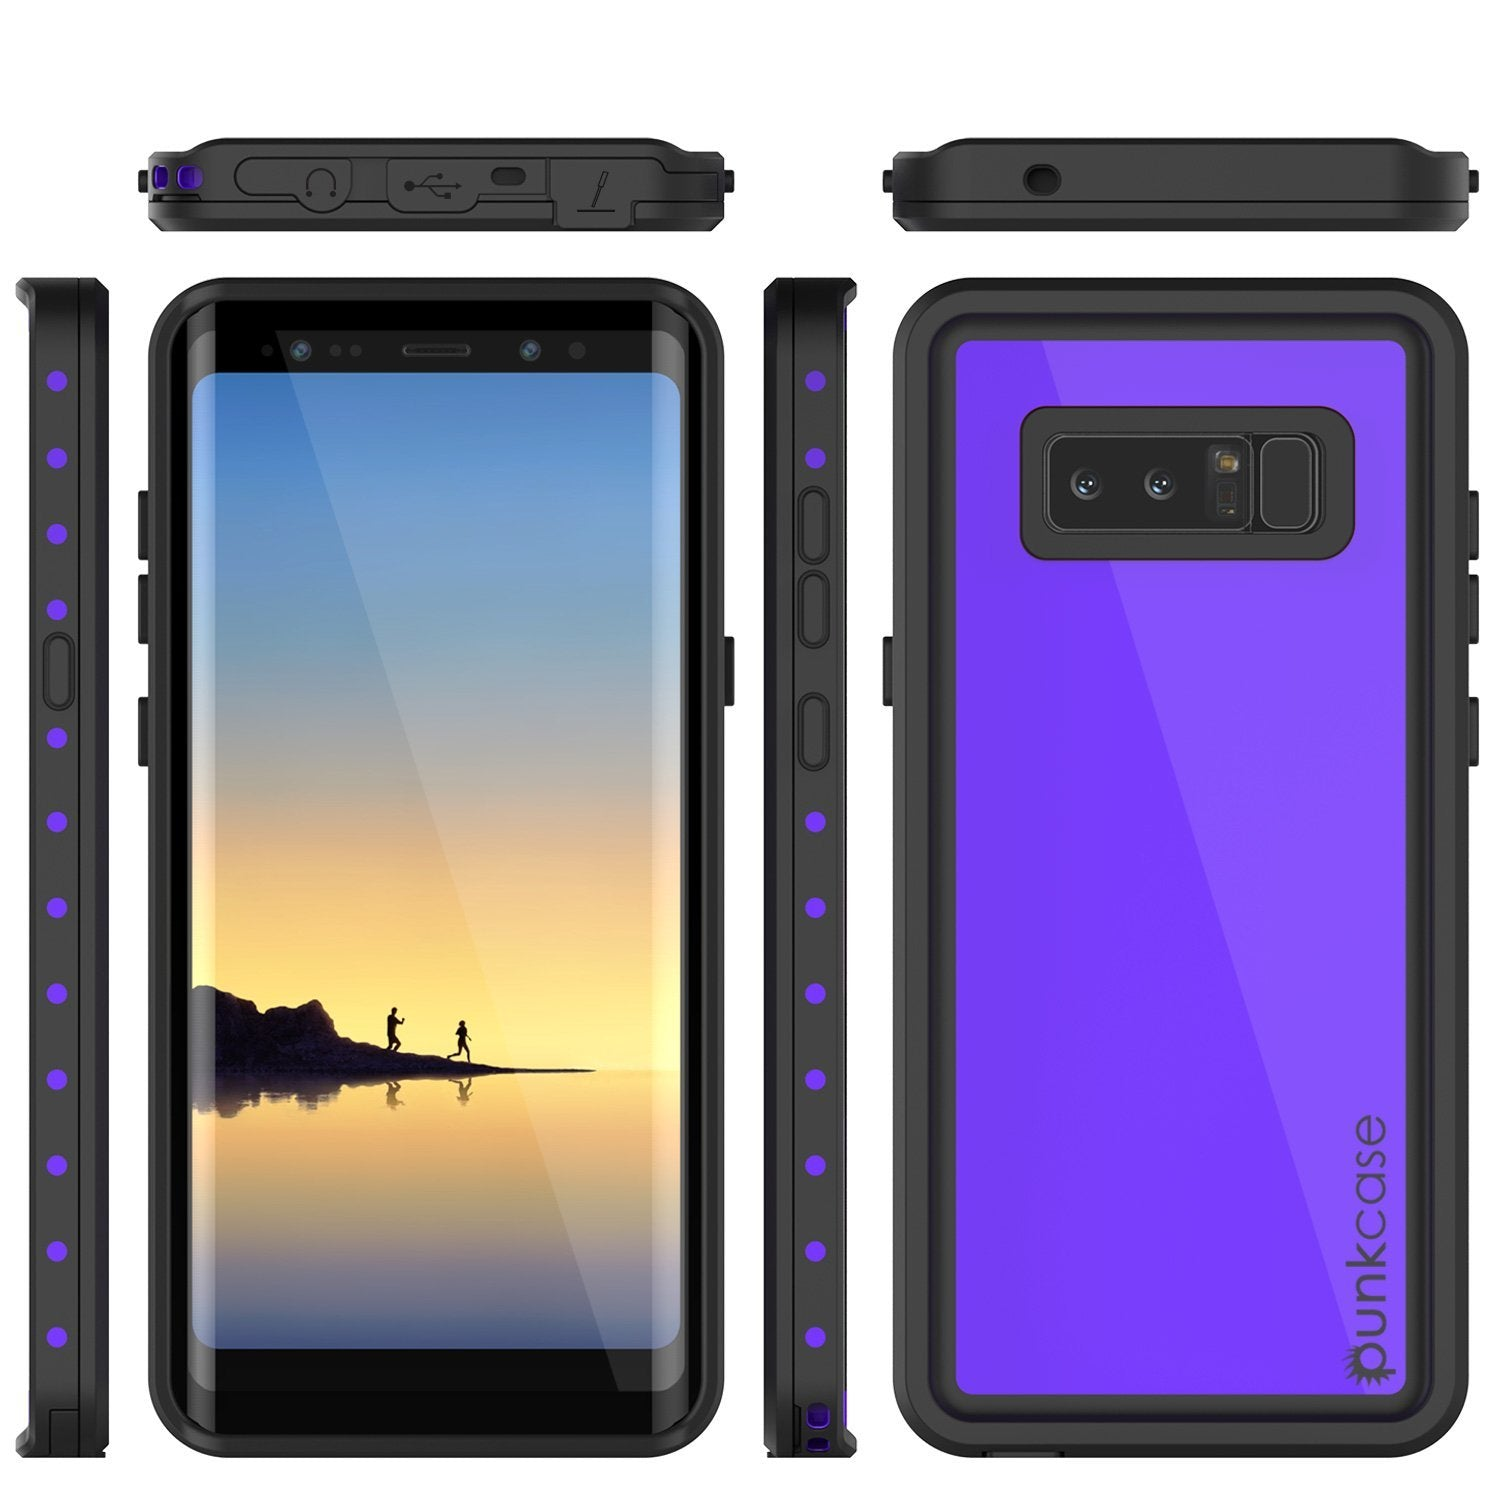 Galaxy Note 8 Waterproof case, StudStar Series Armor Cover [PURPLE]